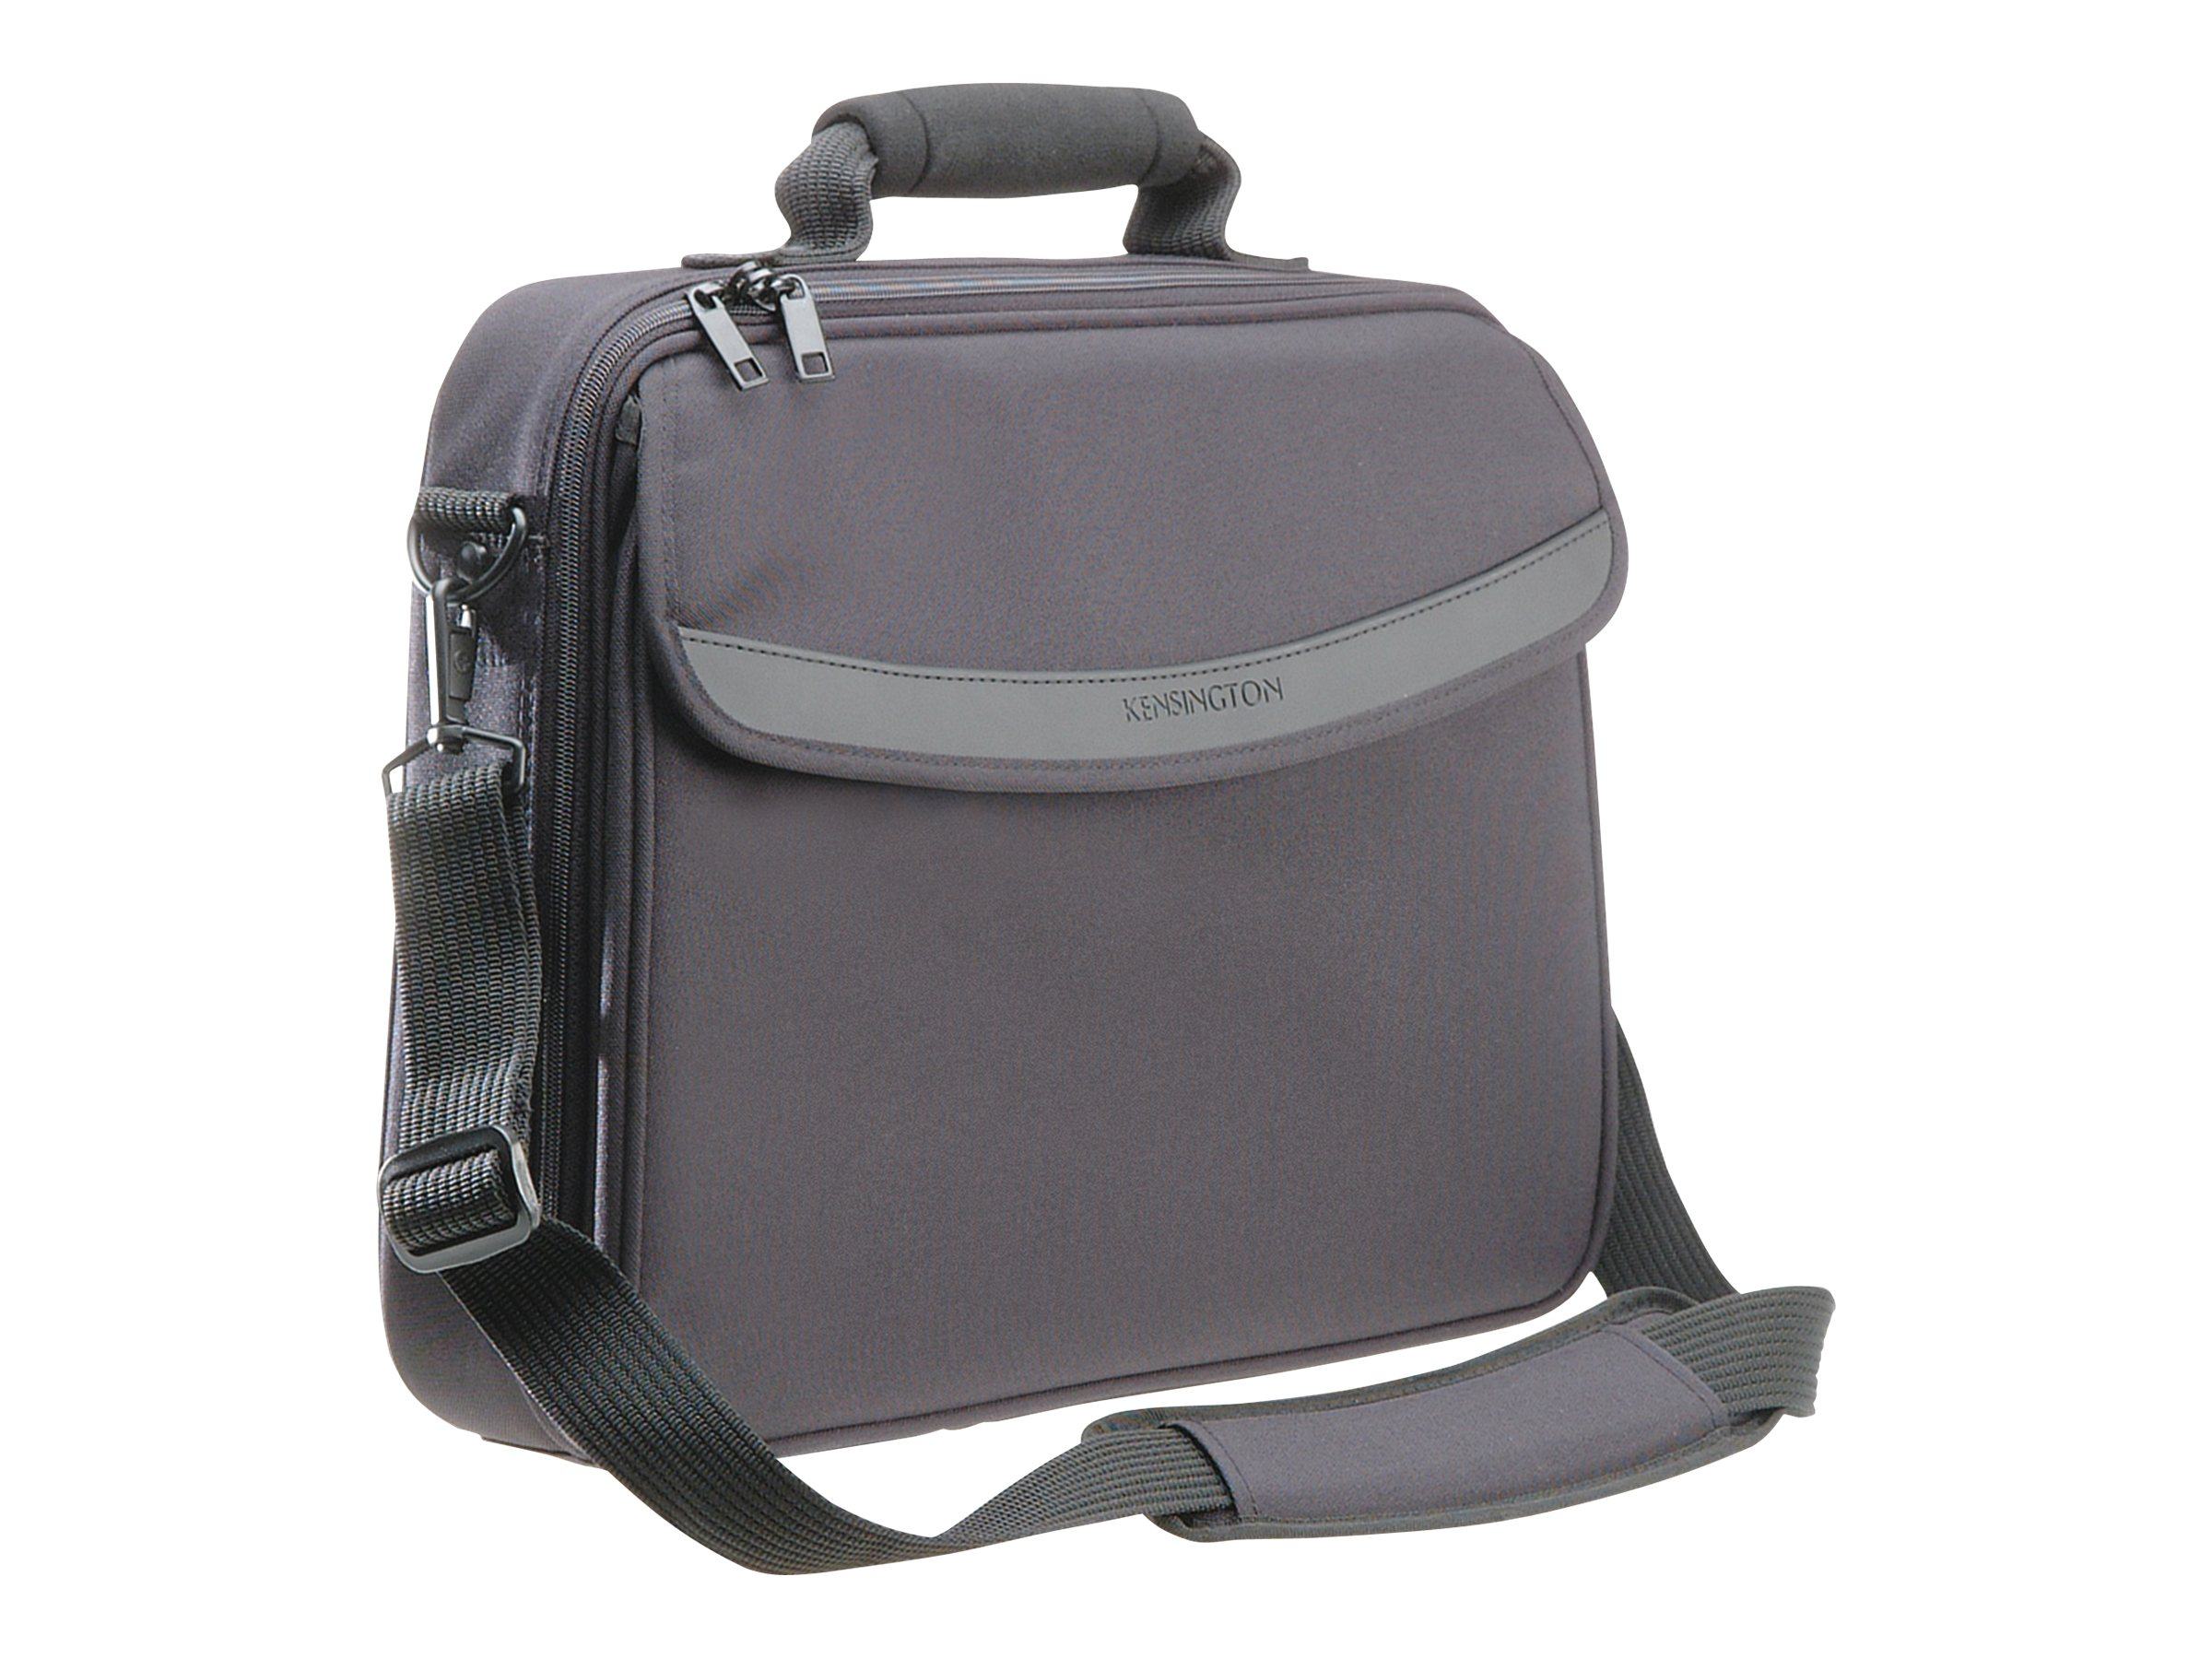 Kensington SureCheck Associate Notebook Case - 14.1, 62148, 434958, Carrying Cases - Notebook